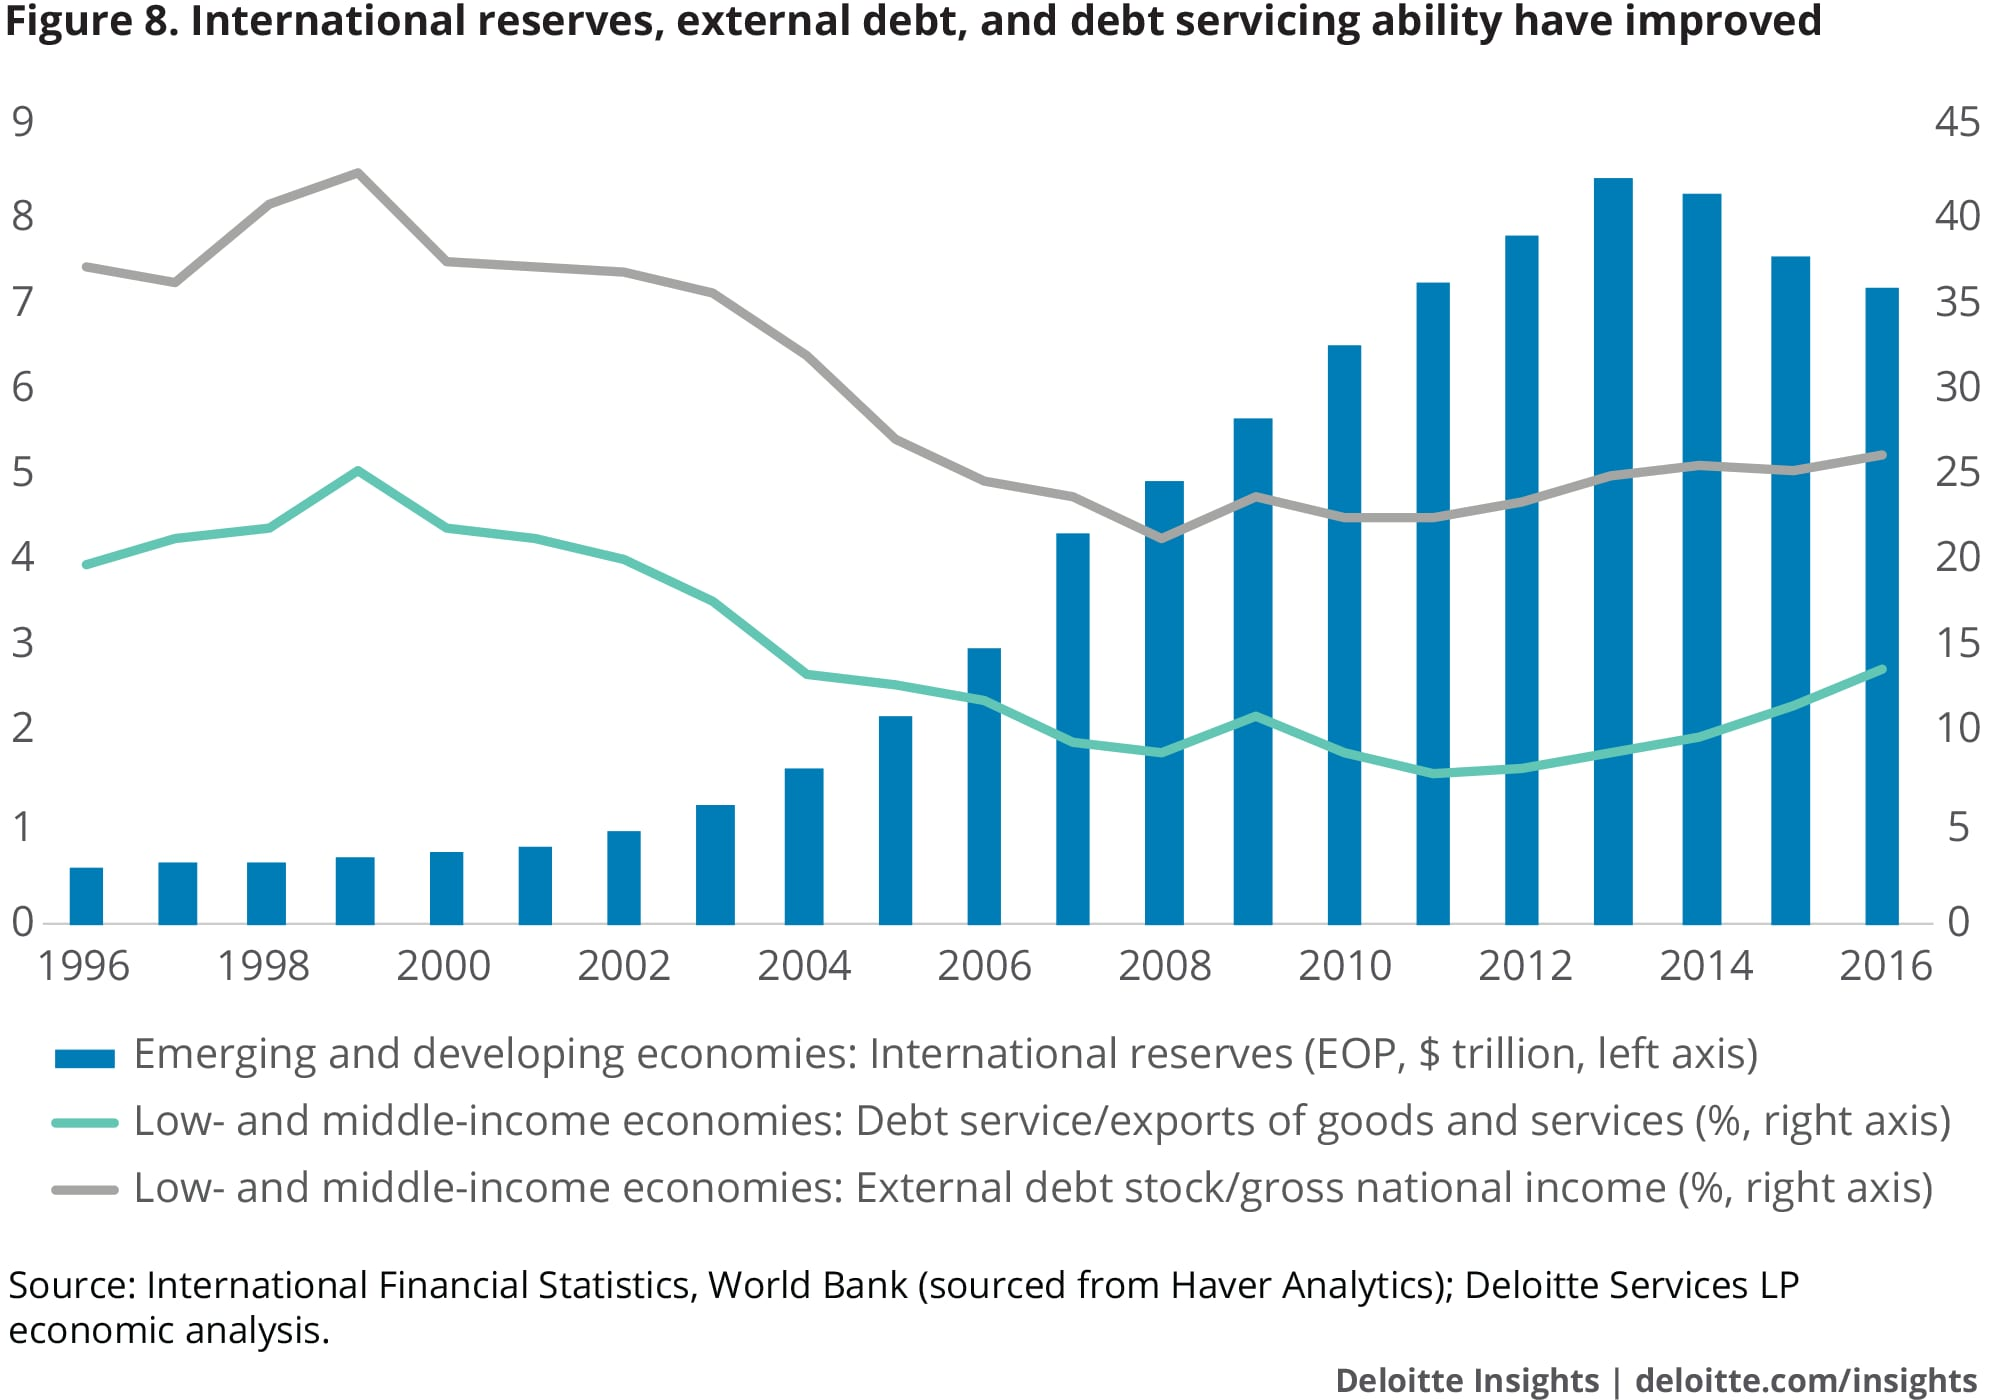 International reserves, external debt and debt servicing ability have improved